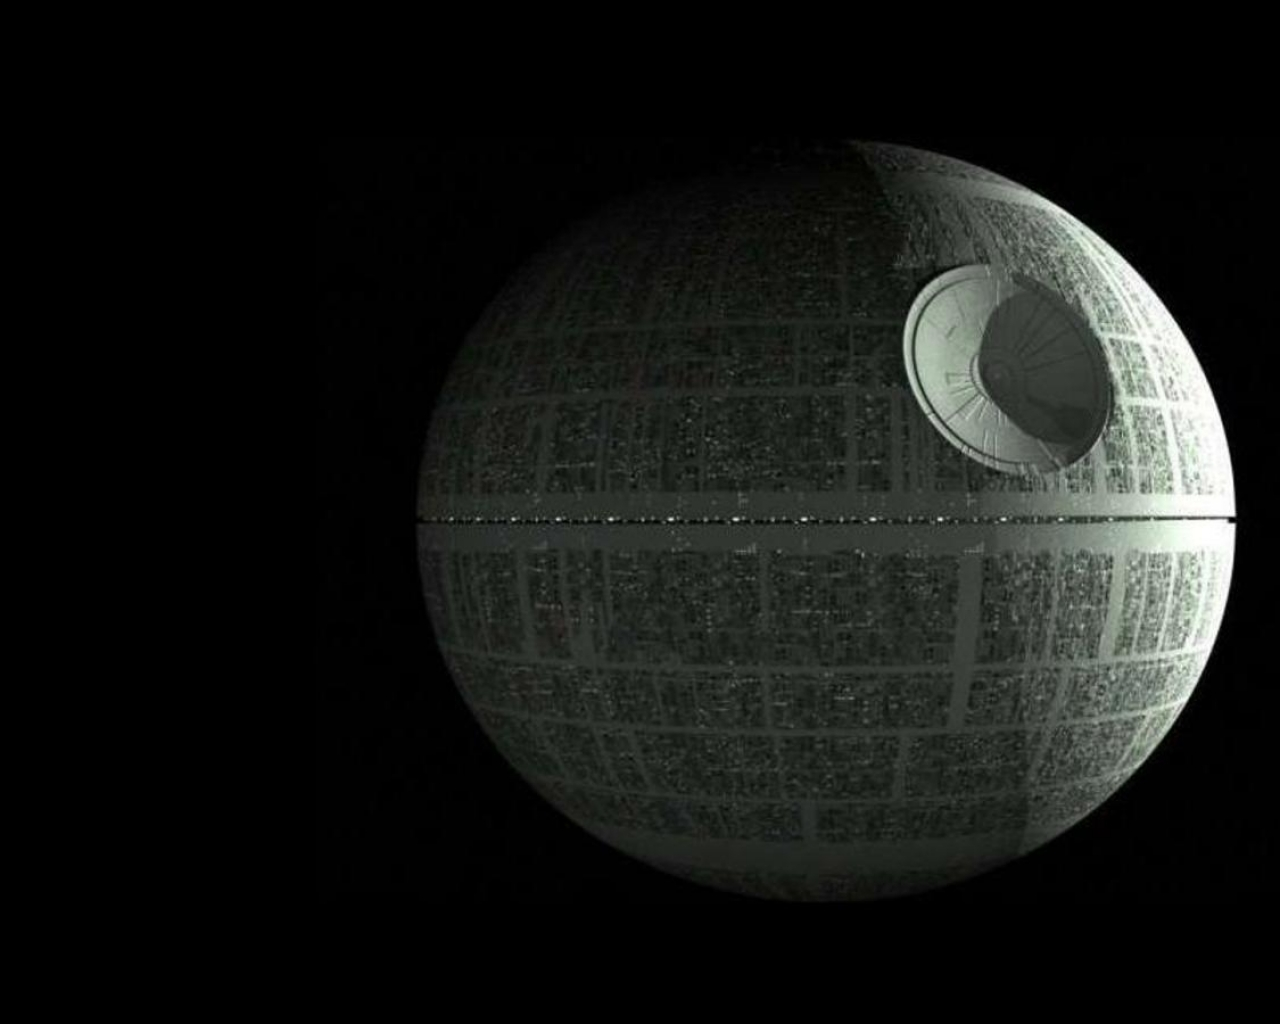 Related Pictures star wars death star iphone wallpaper background and 1280x1024